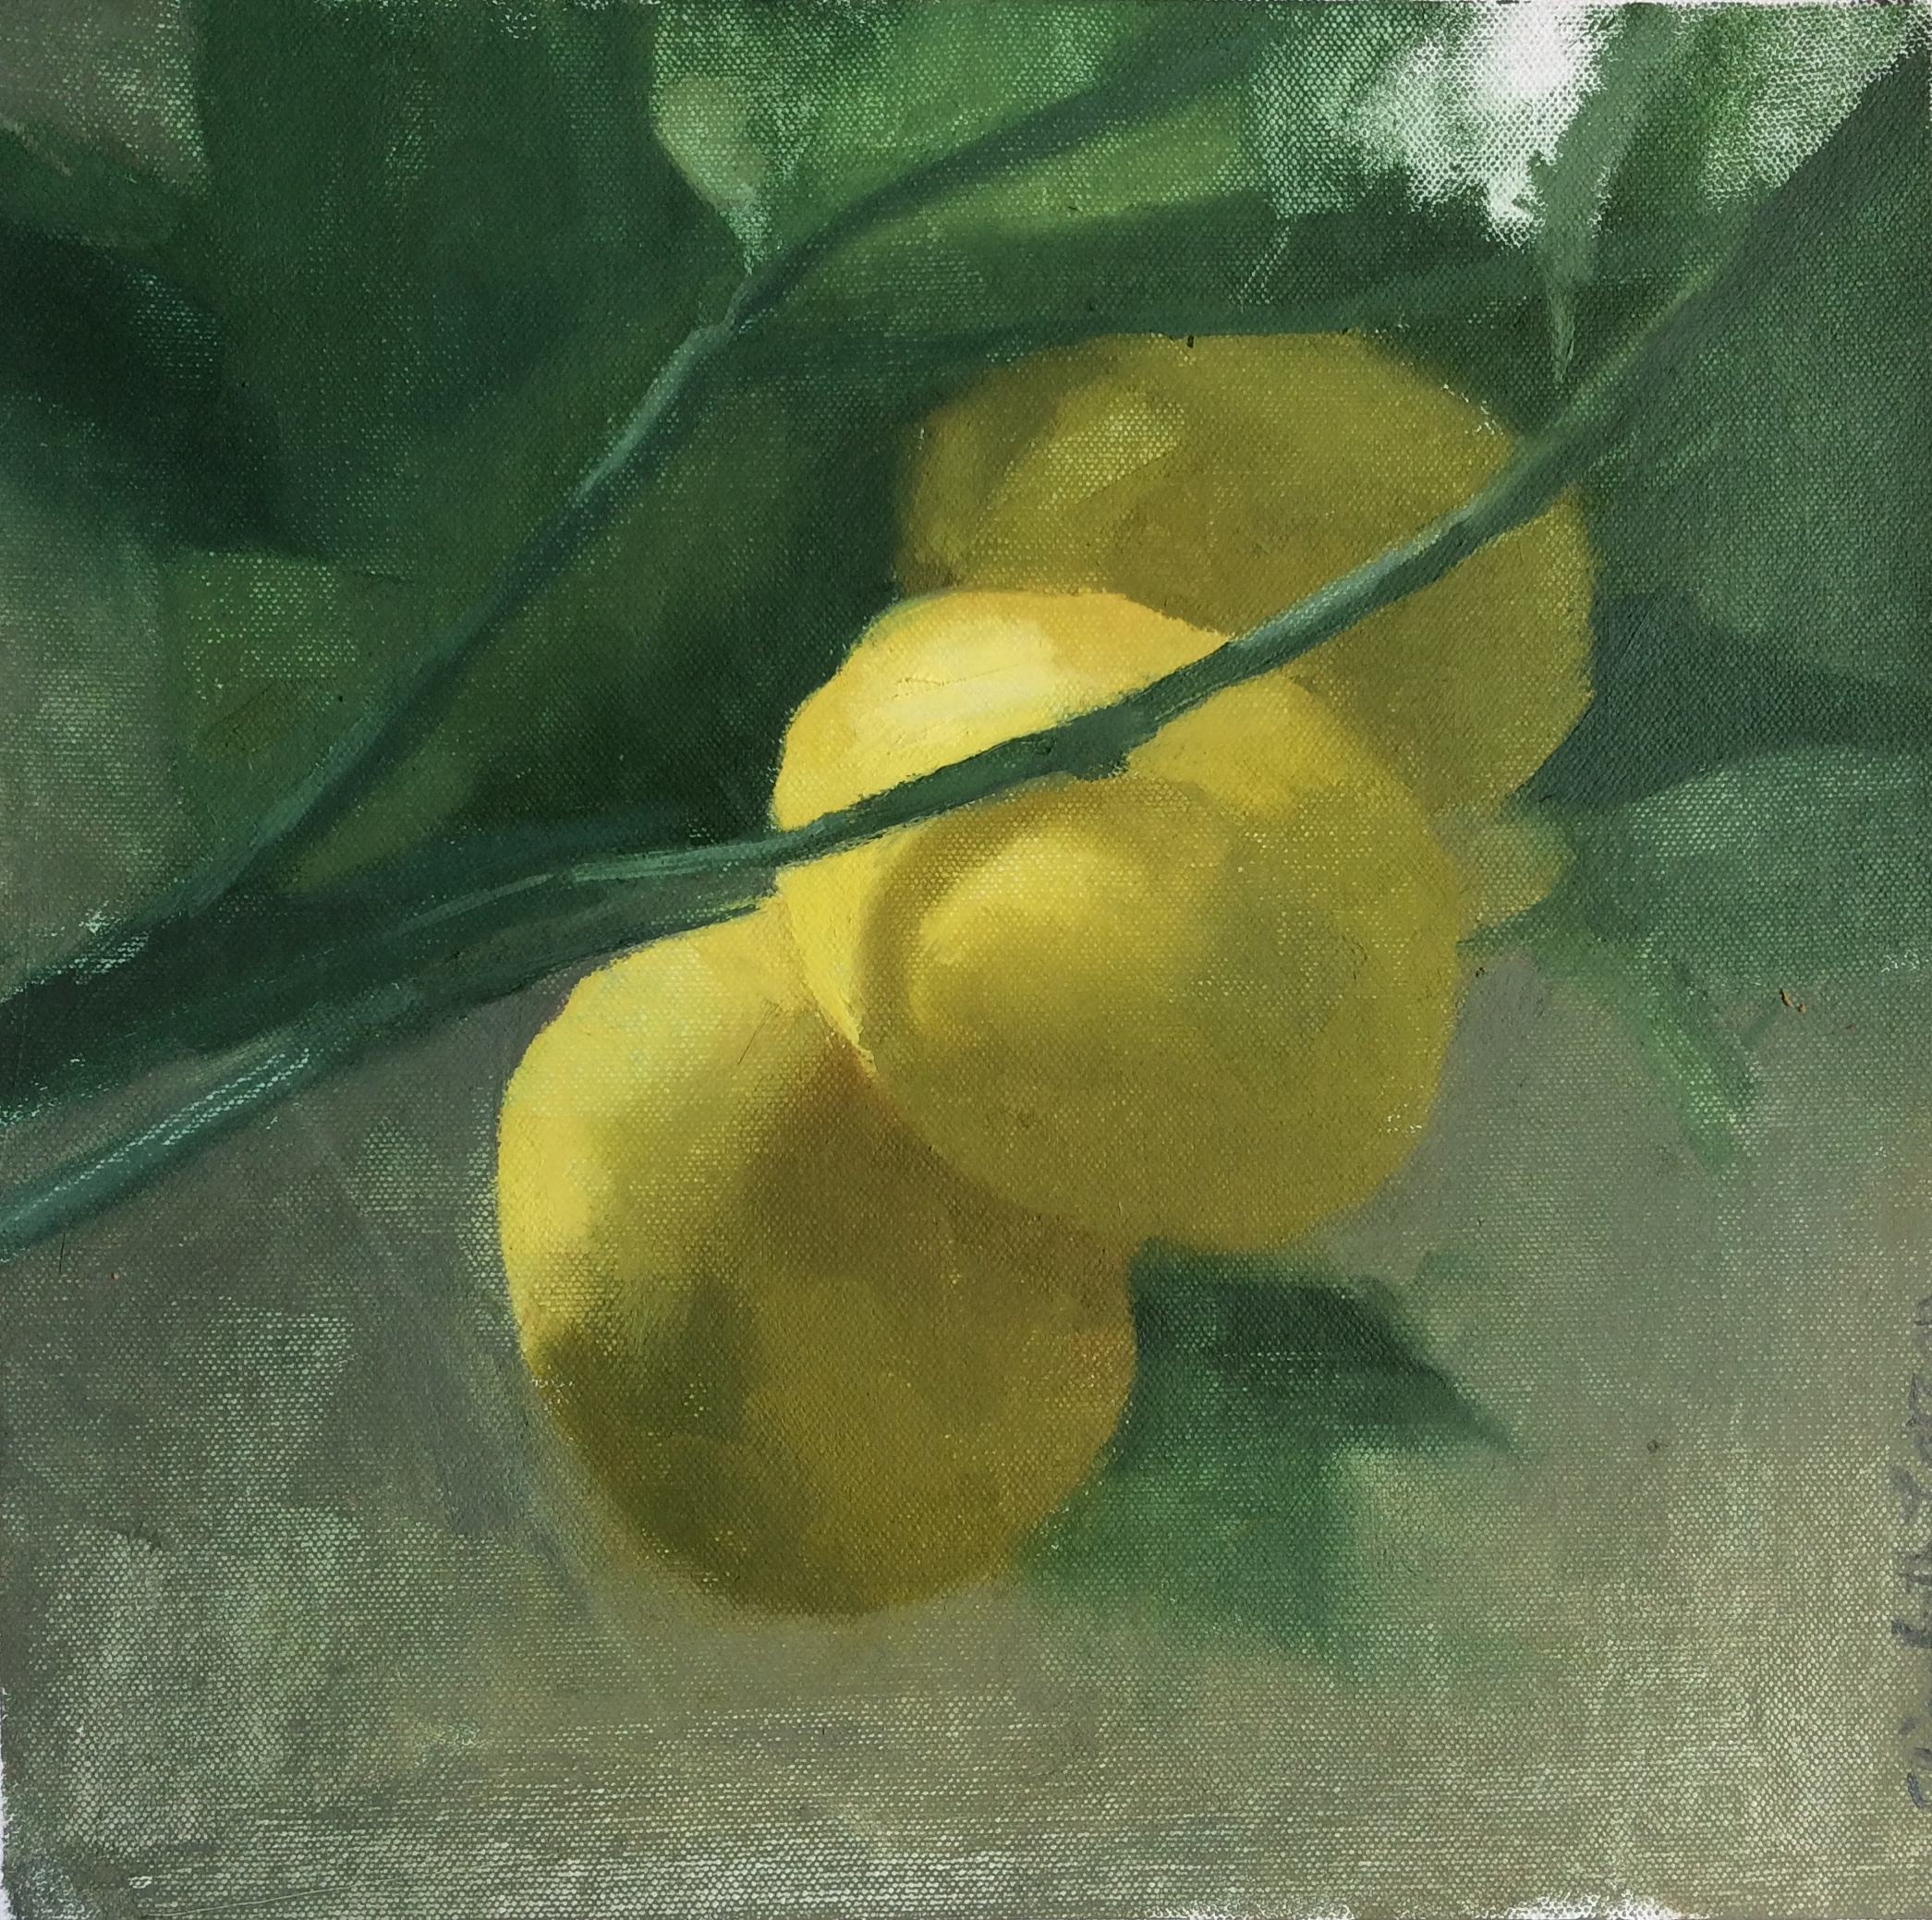 """Lemons of Redlands"" 12"" x 12"" oil on canvas, private collection"